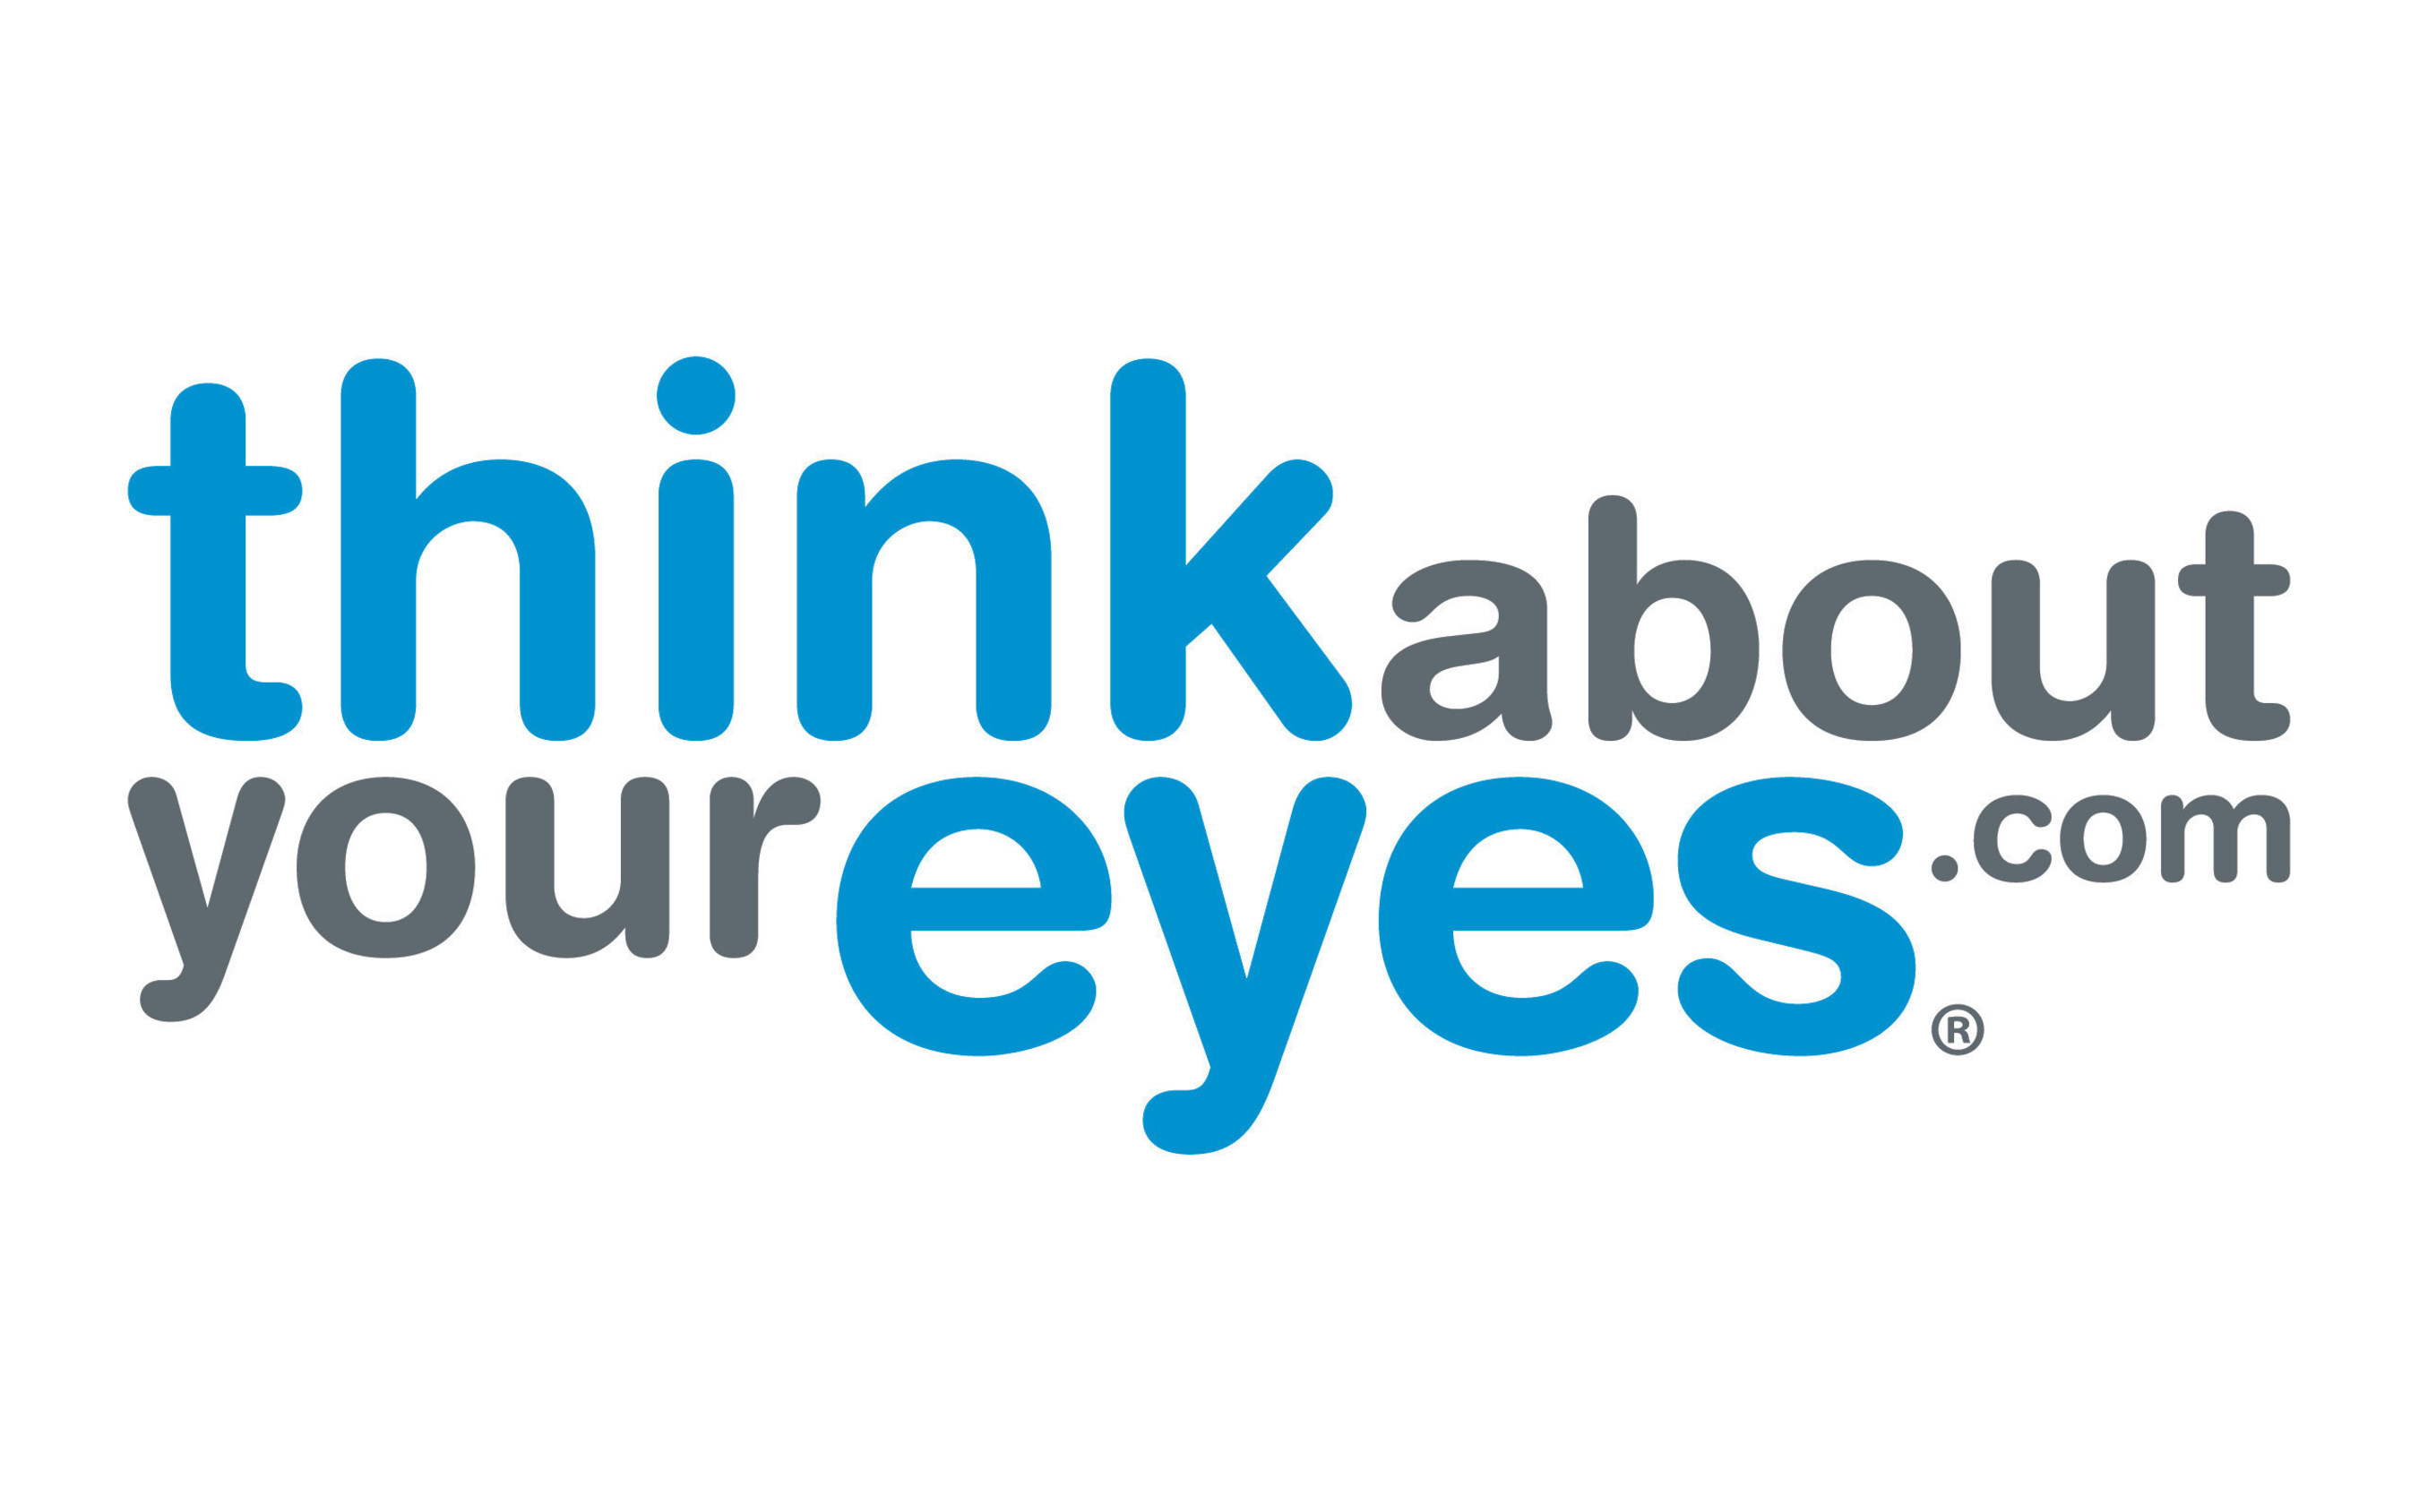 Think About Your Eyes, a national public awareness campaign to promote the importance of an annual comprehensive eye exam, aims to educate consumers of all ages on why exams are an important part of overall health and wellness.